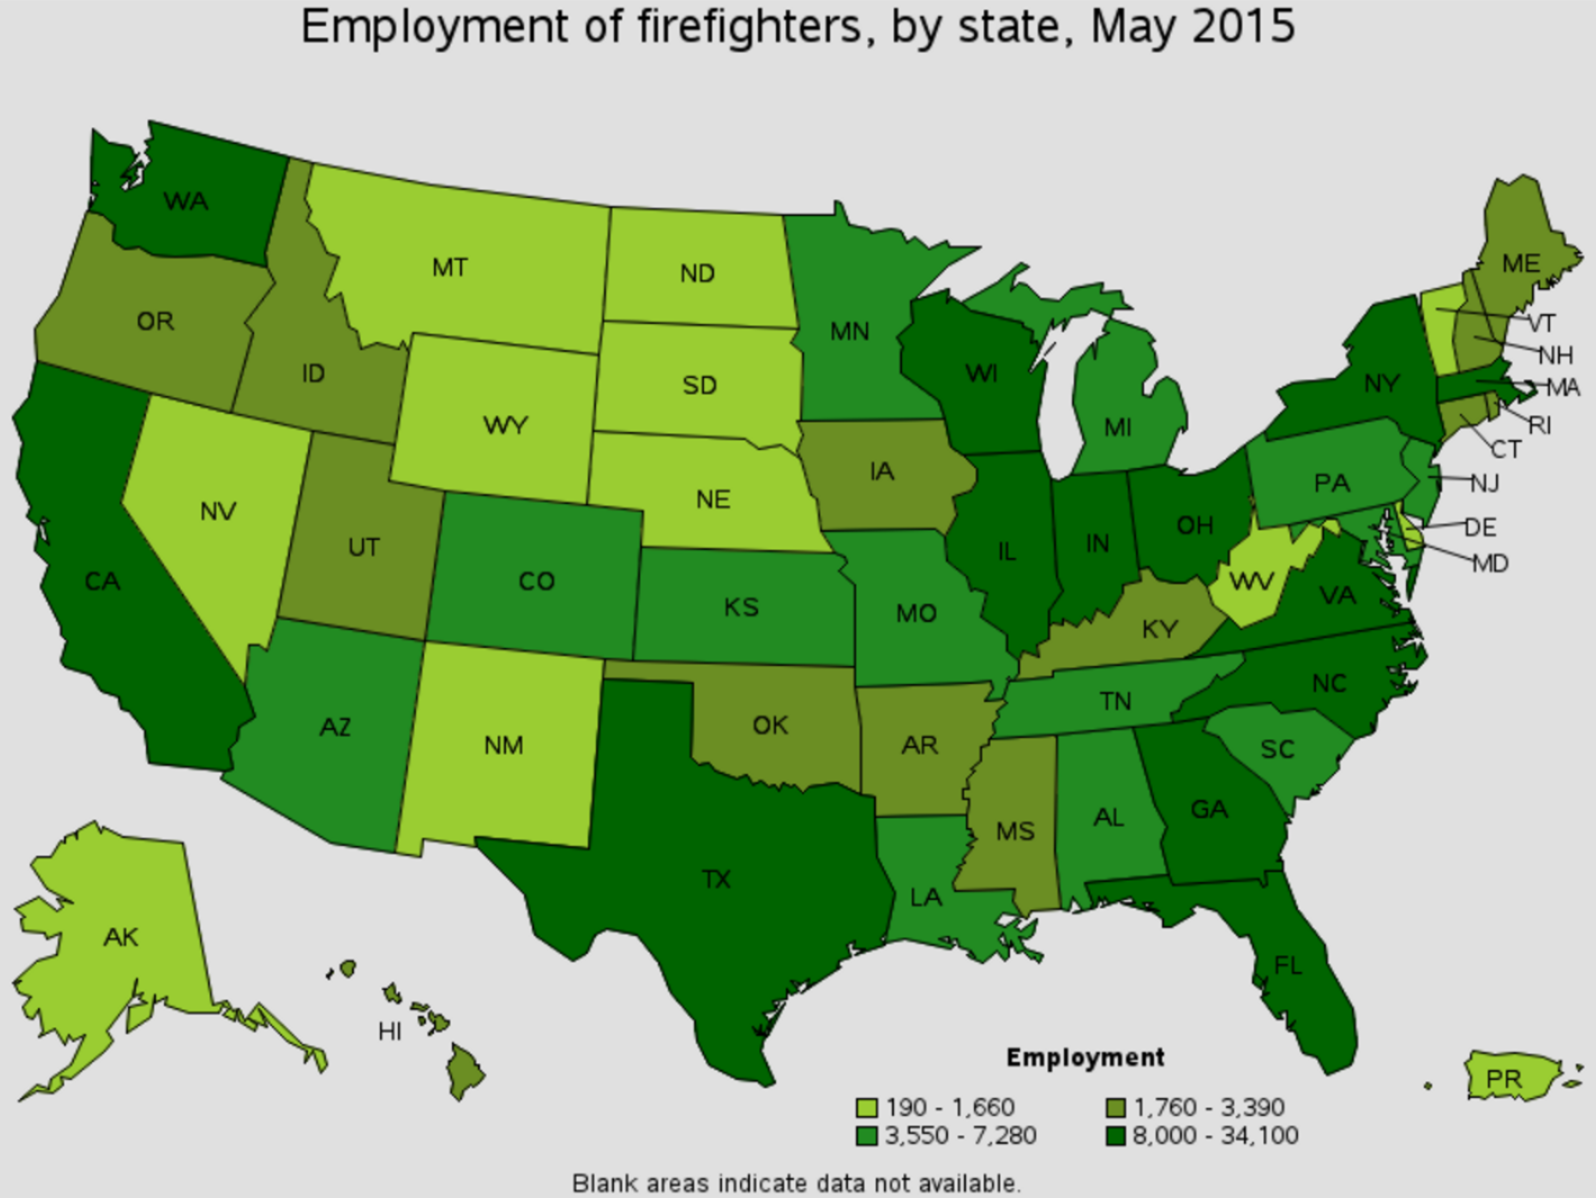 firefighter job outlook by state Welch West Virginia